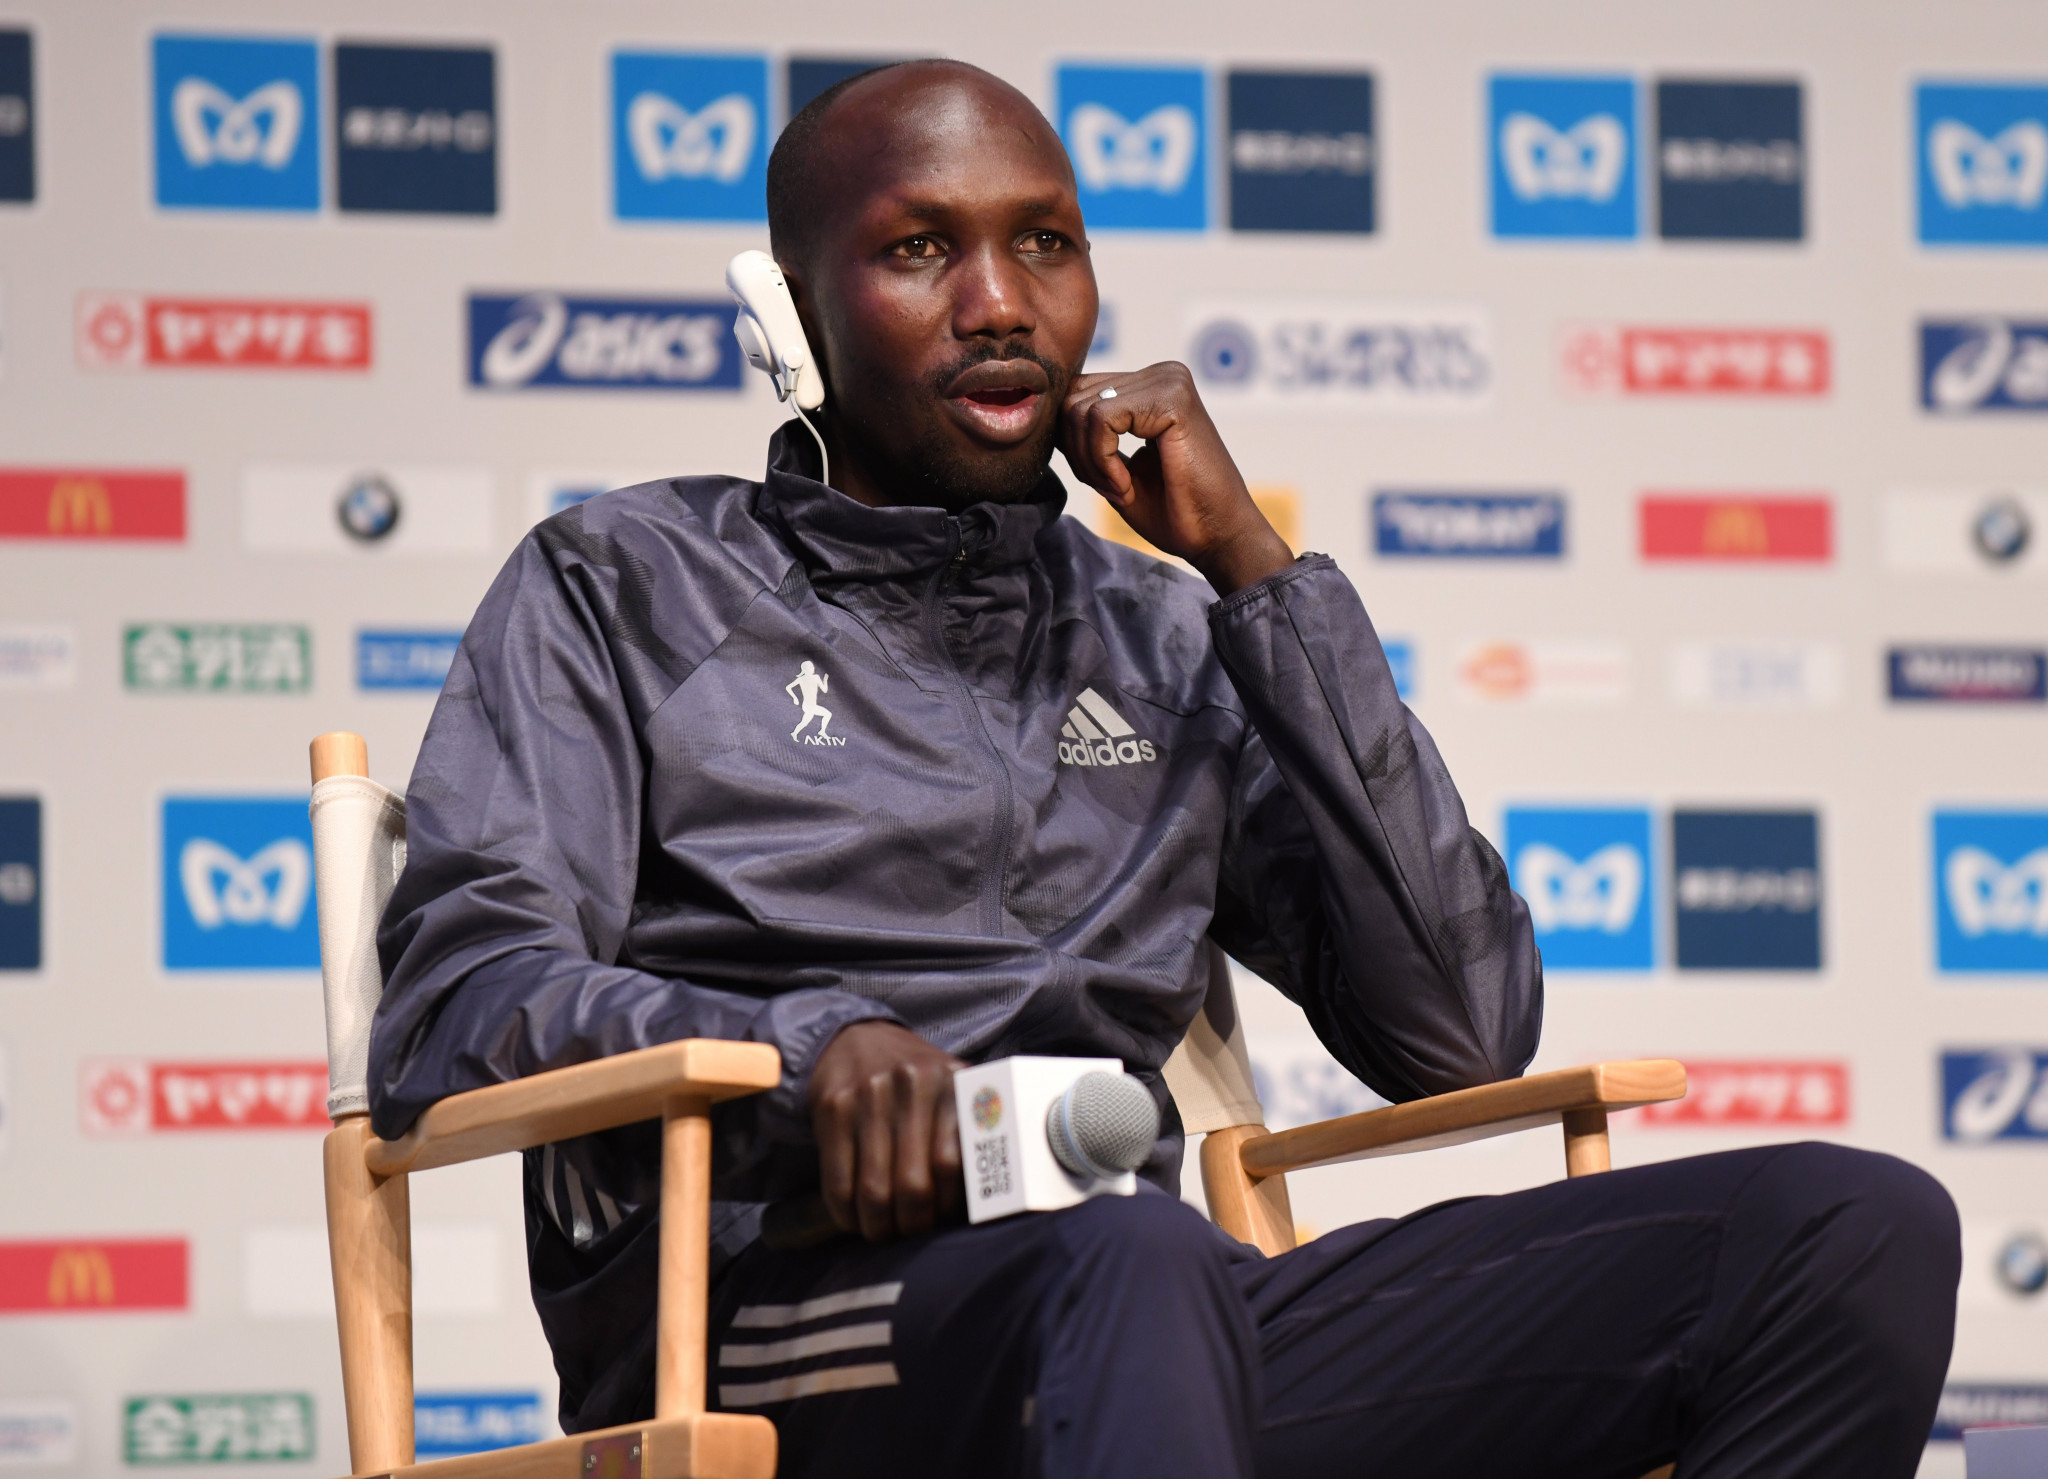 Wilson Kipsang was among a group arrested in Iten yesterday ©Getty Images